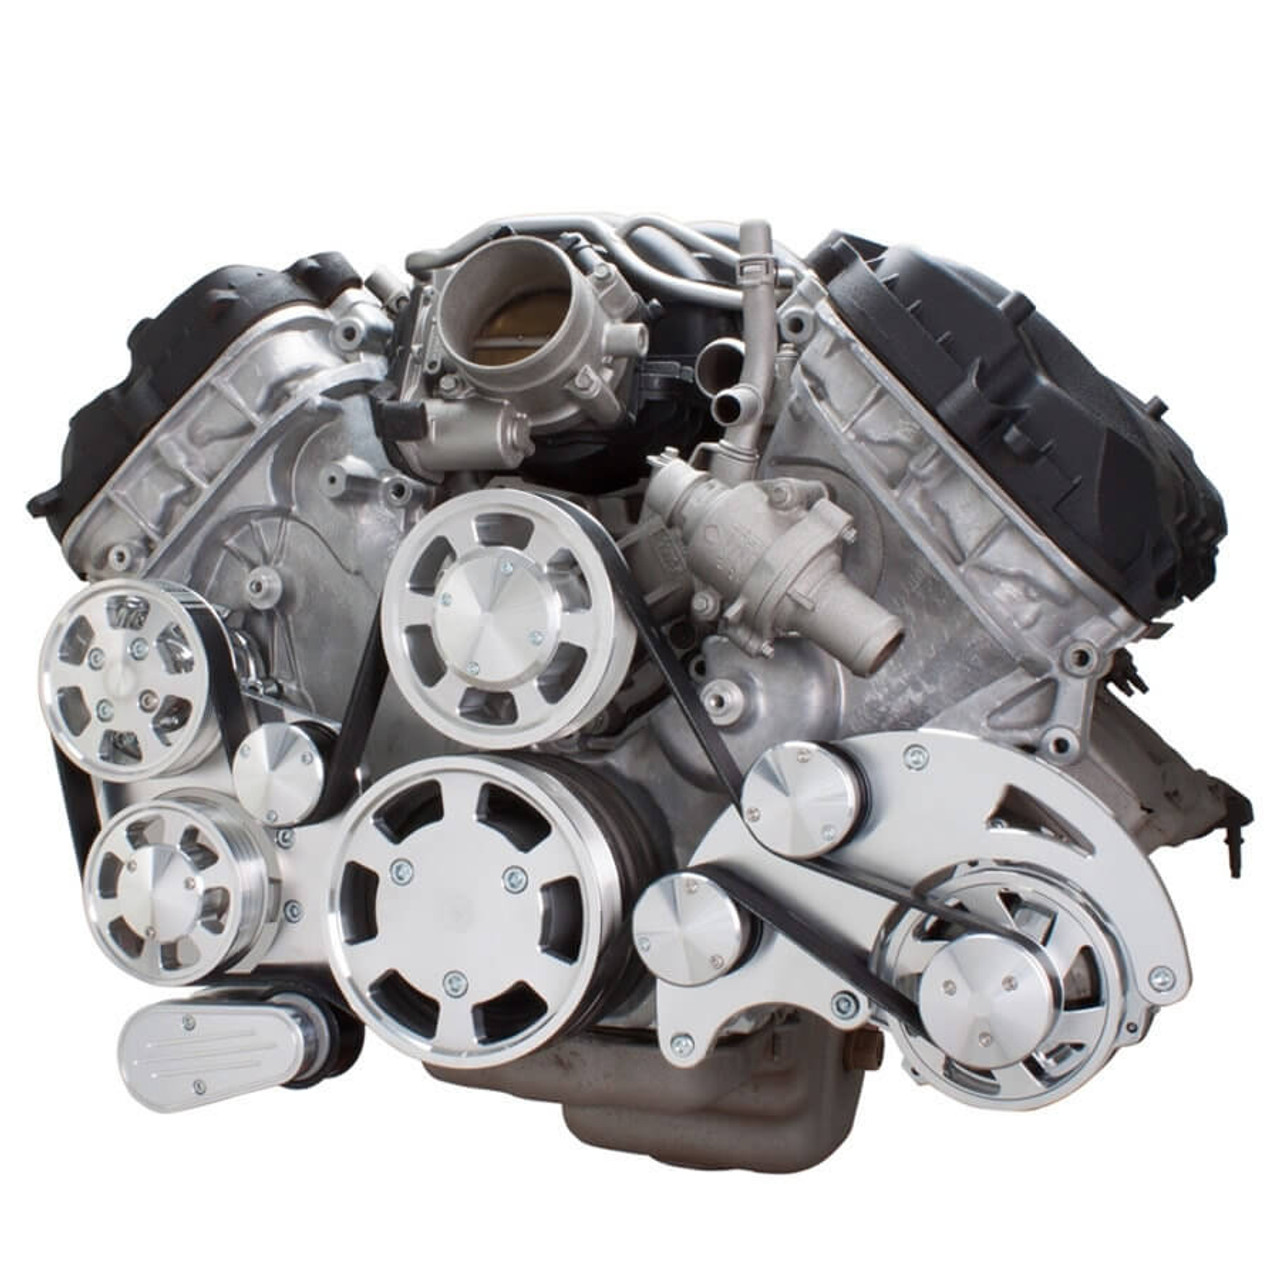 hight resolution of serpentine system for ford coyote 5 0 alternator power steering